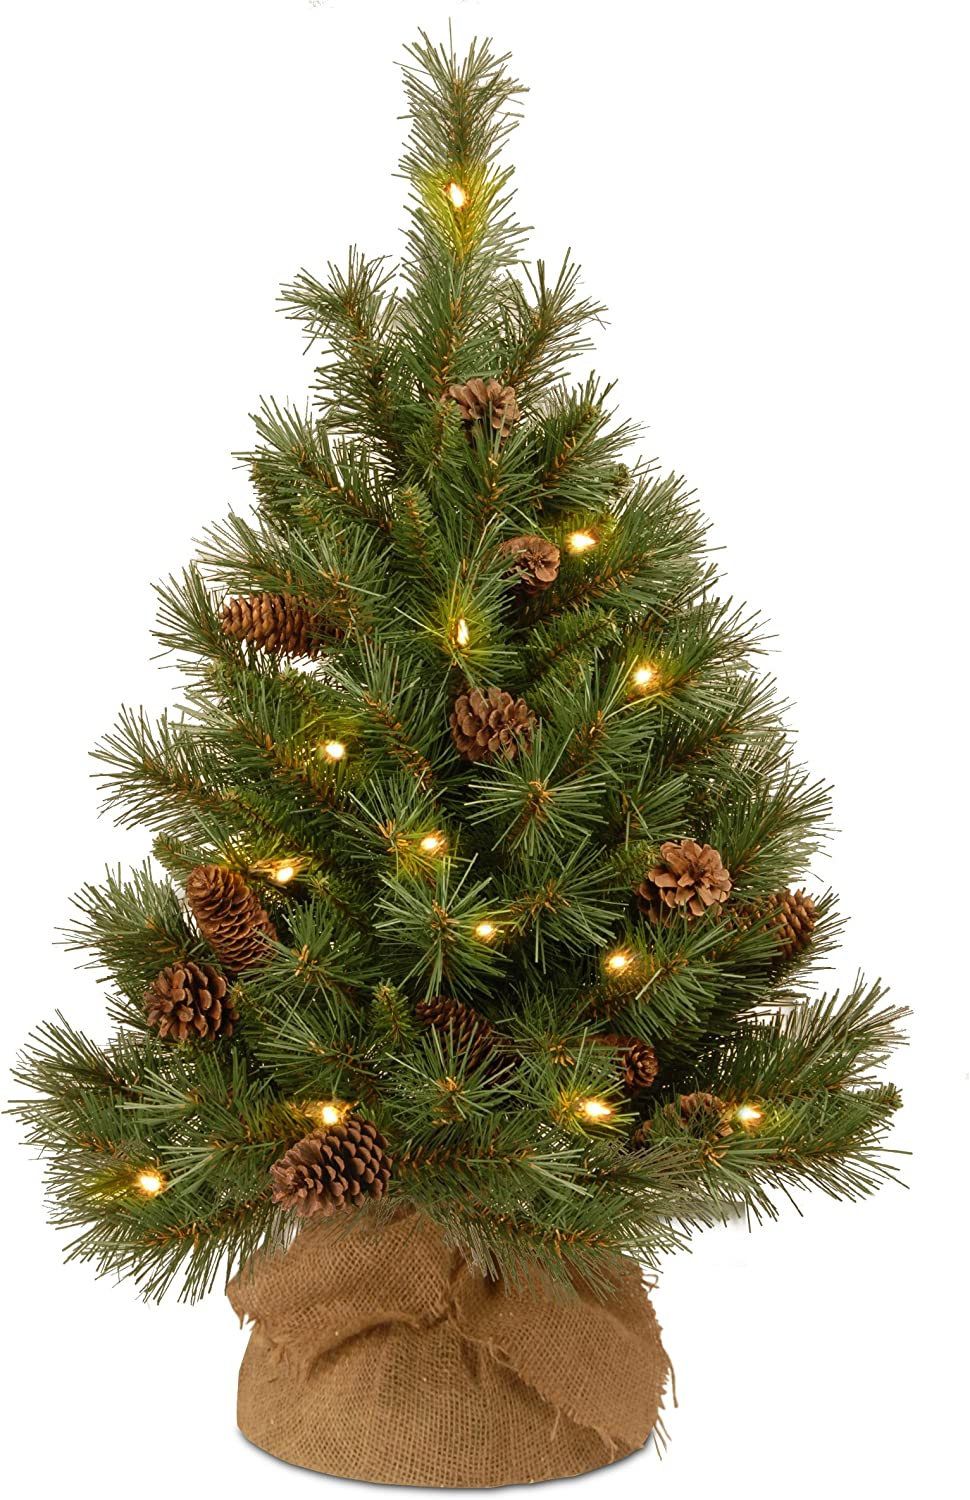 National Tree Company Pre-lit Artificial Mini Christmas Tree | Includes Small LED Lights and Cloth Bag Base | Pine Cone Burlap - 3 ft